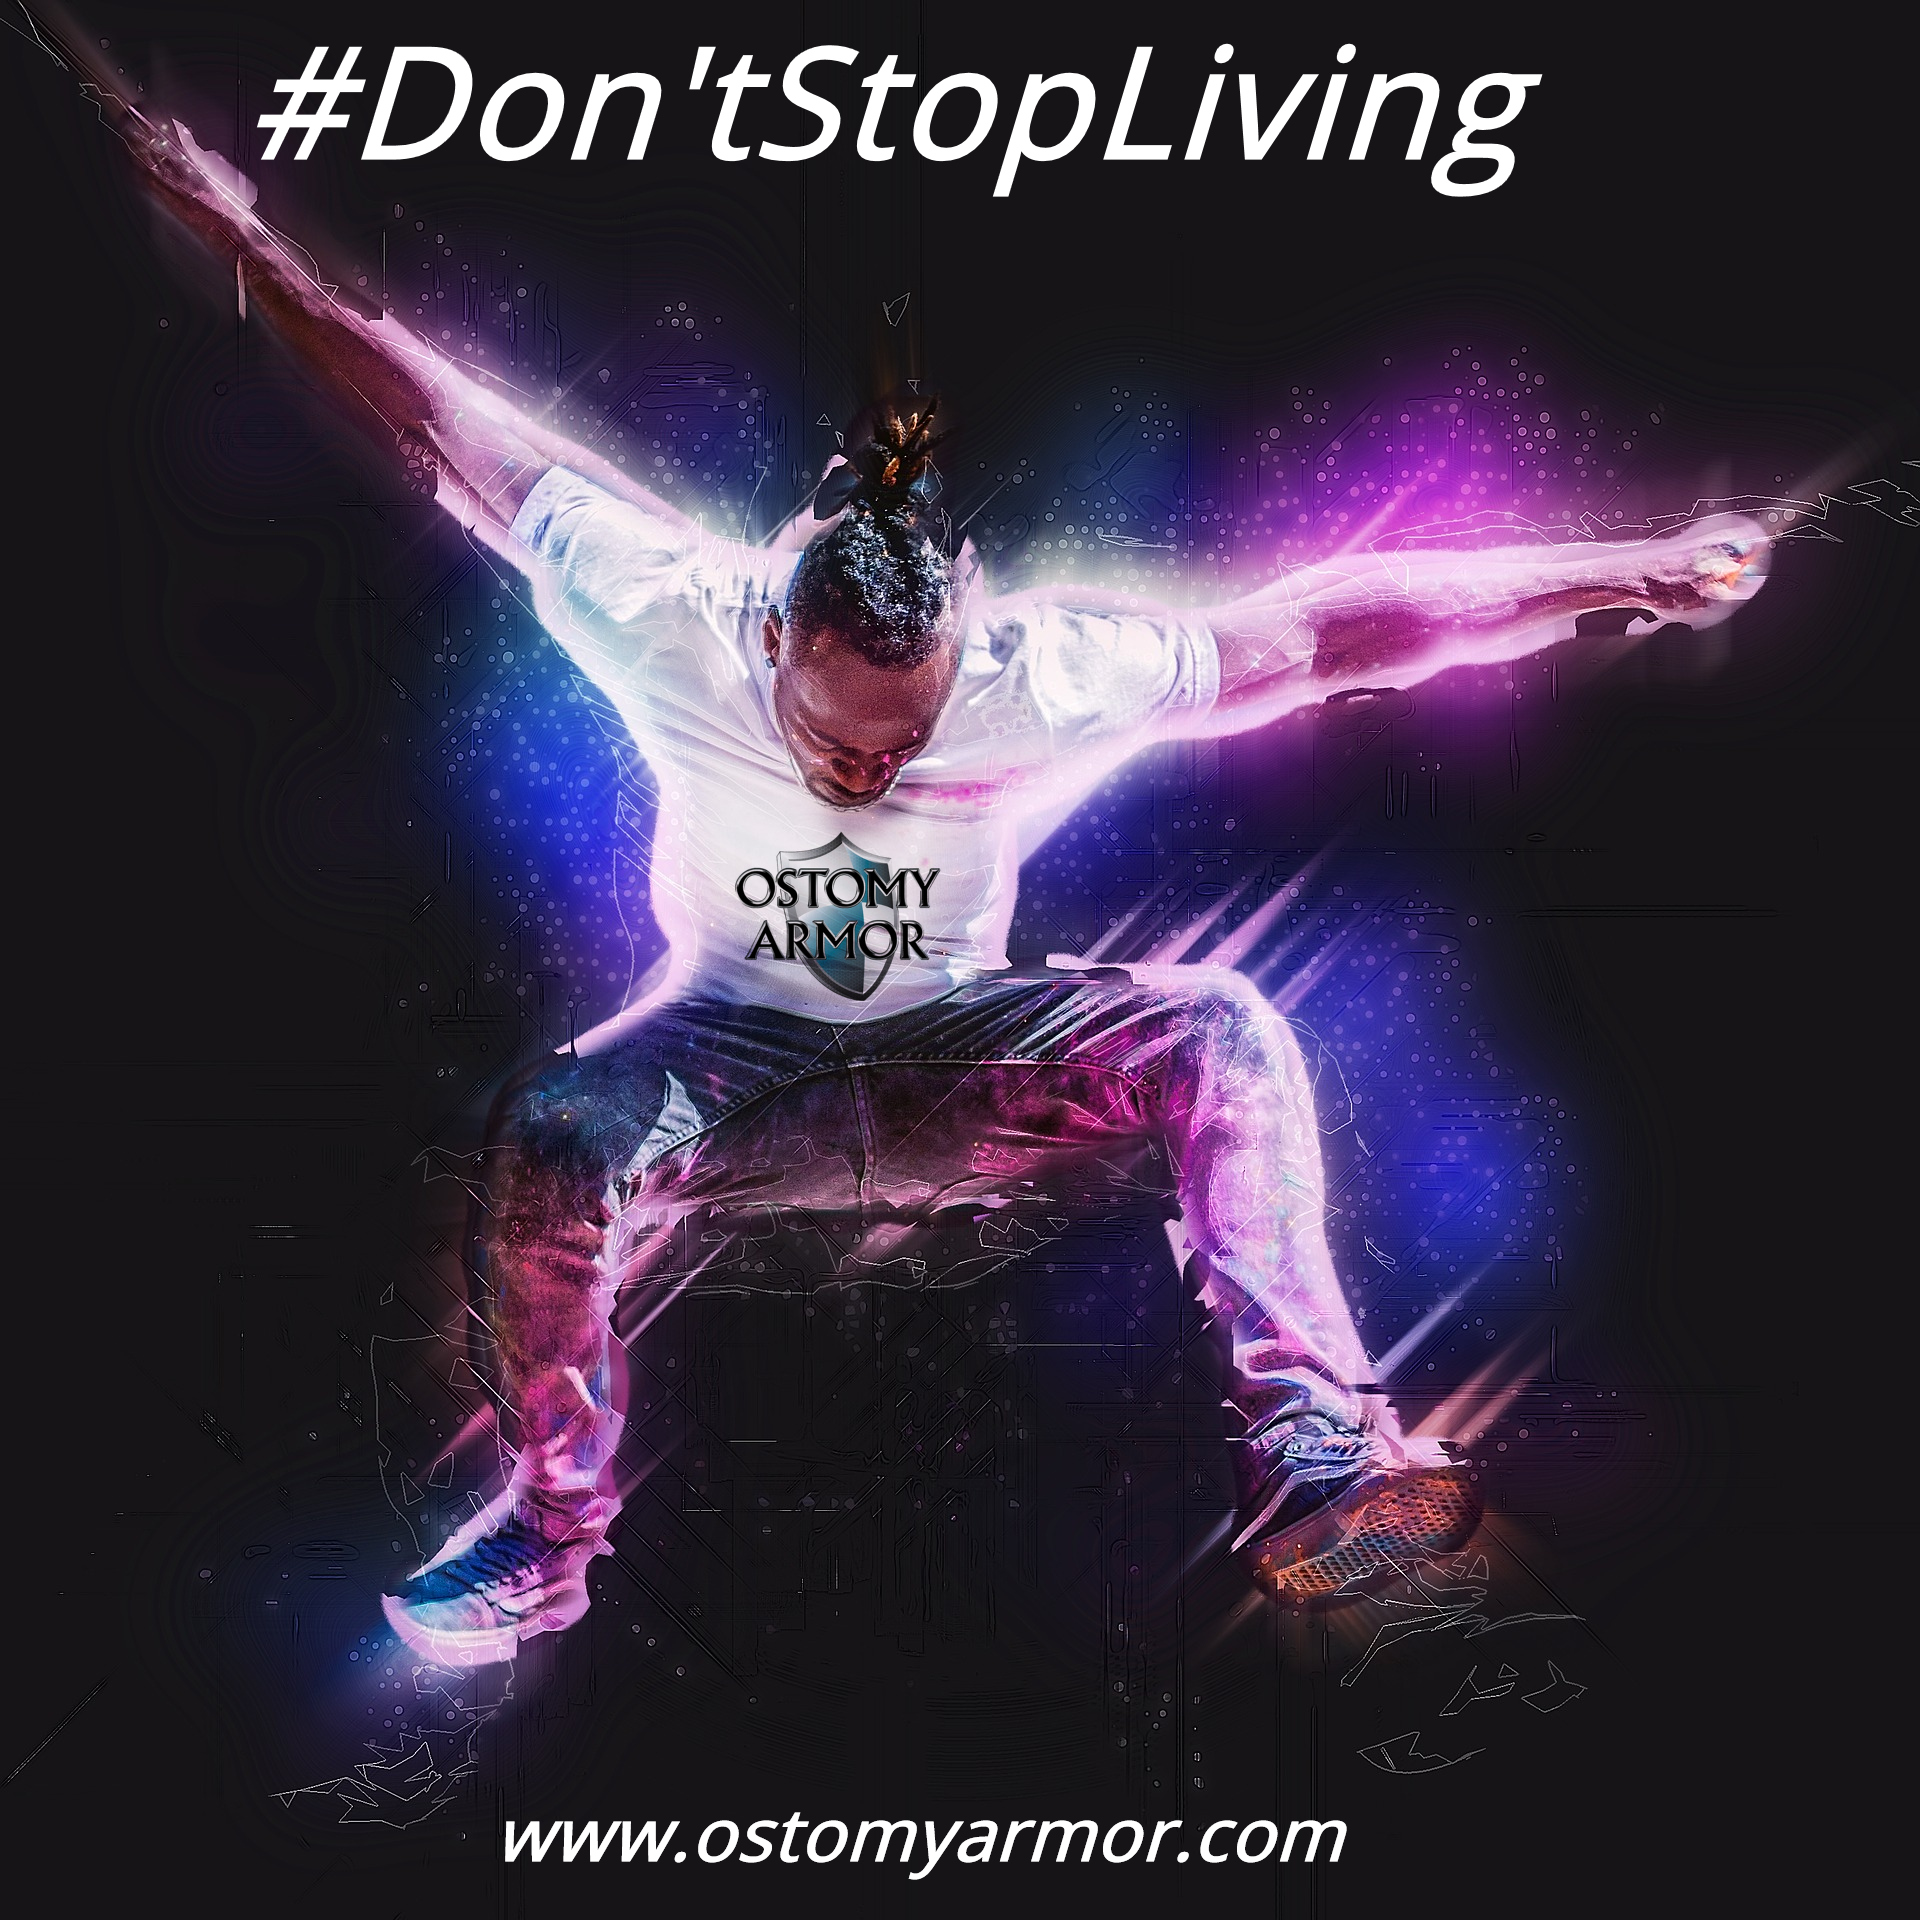 Don't stop living 8